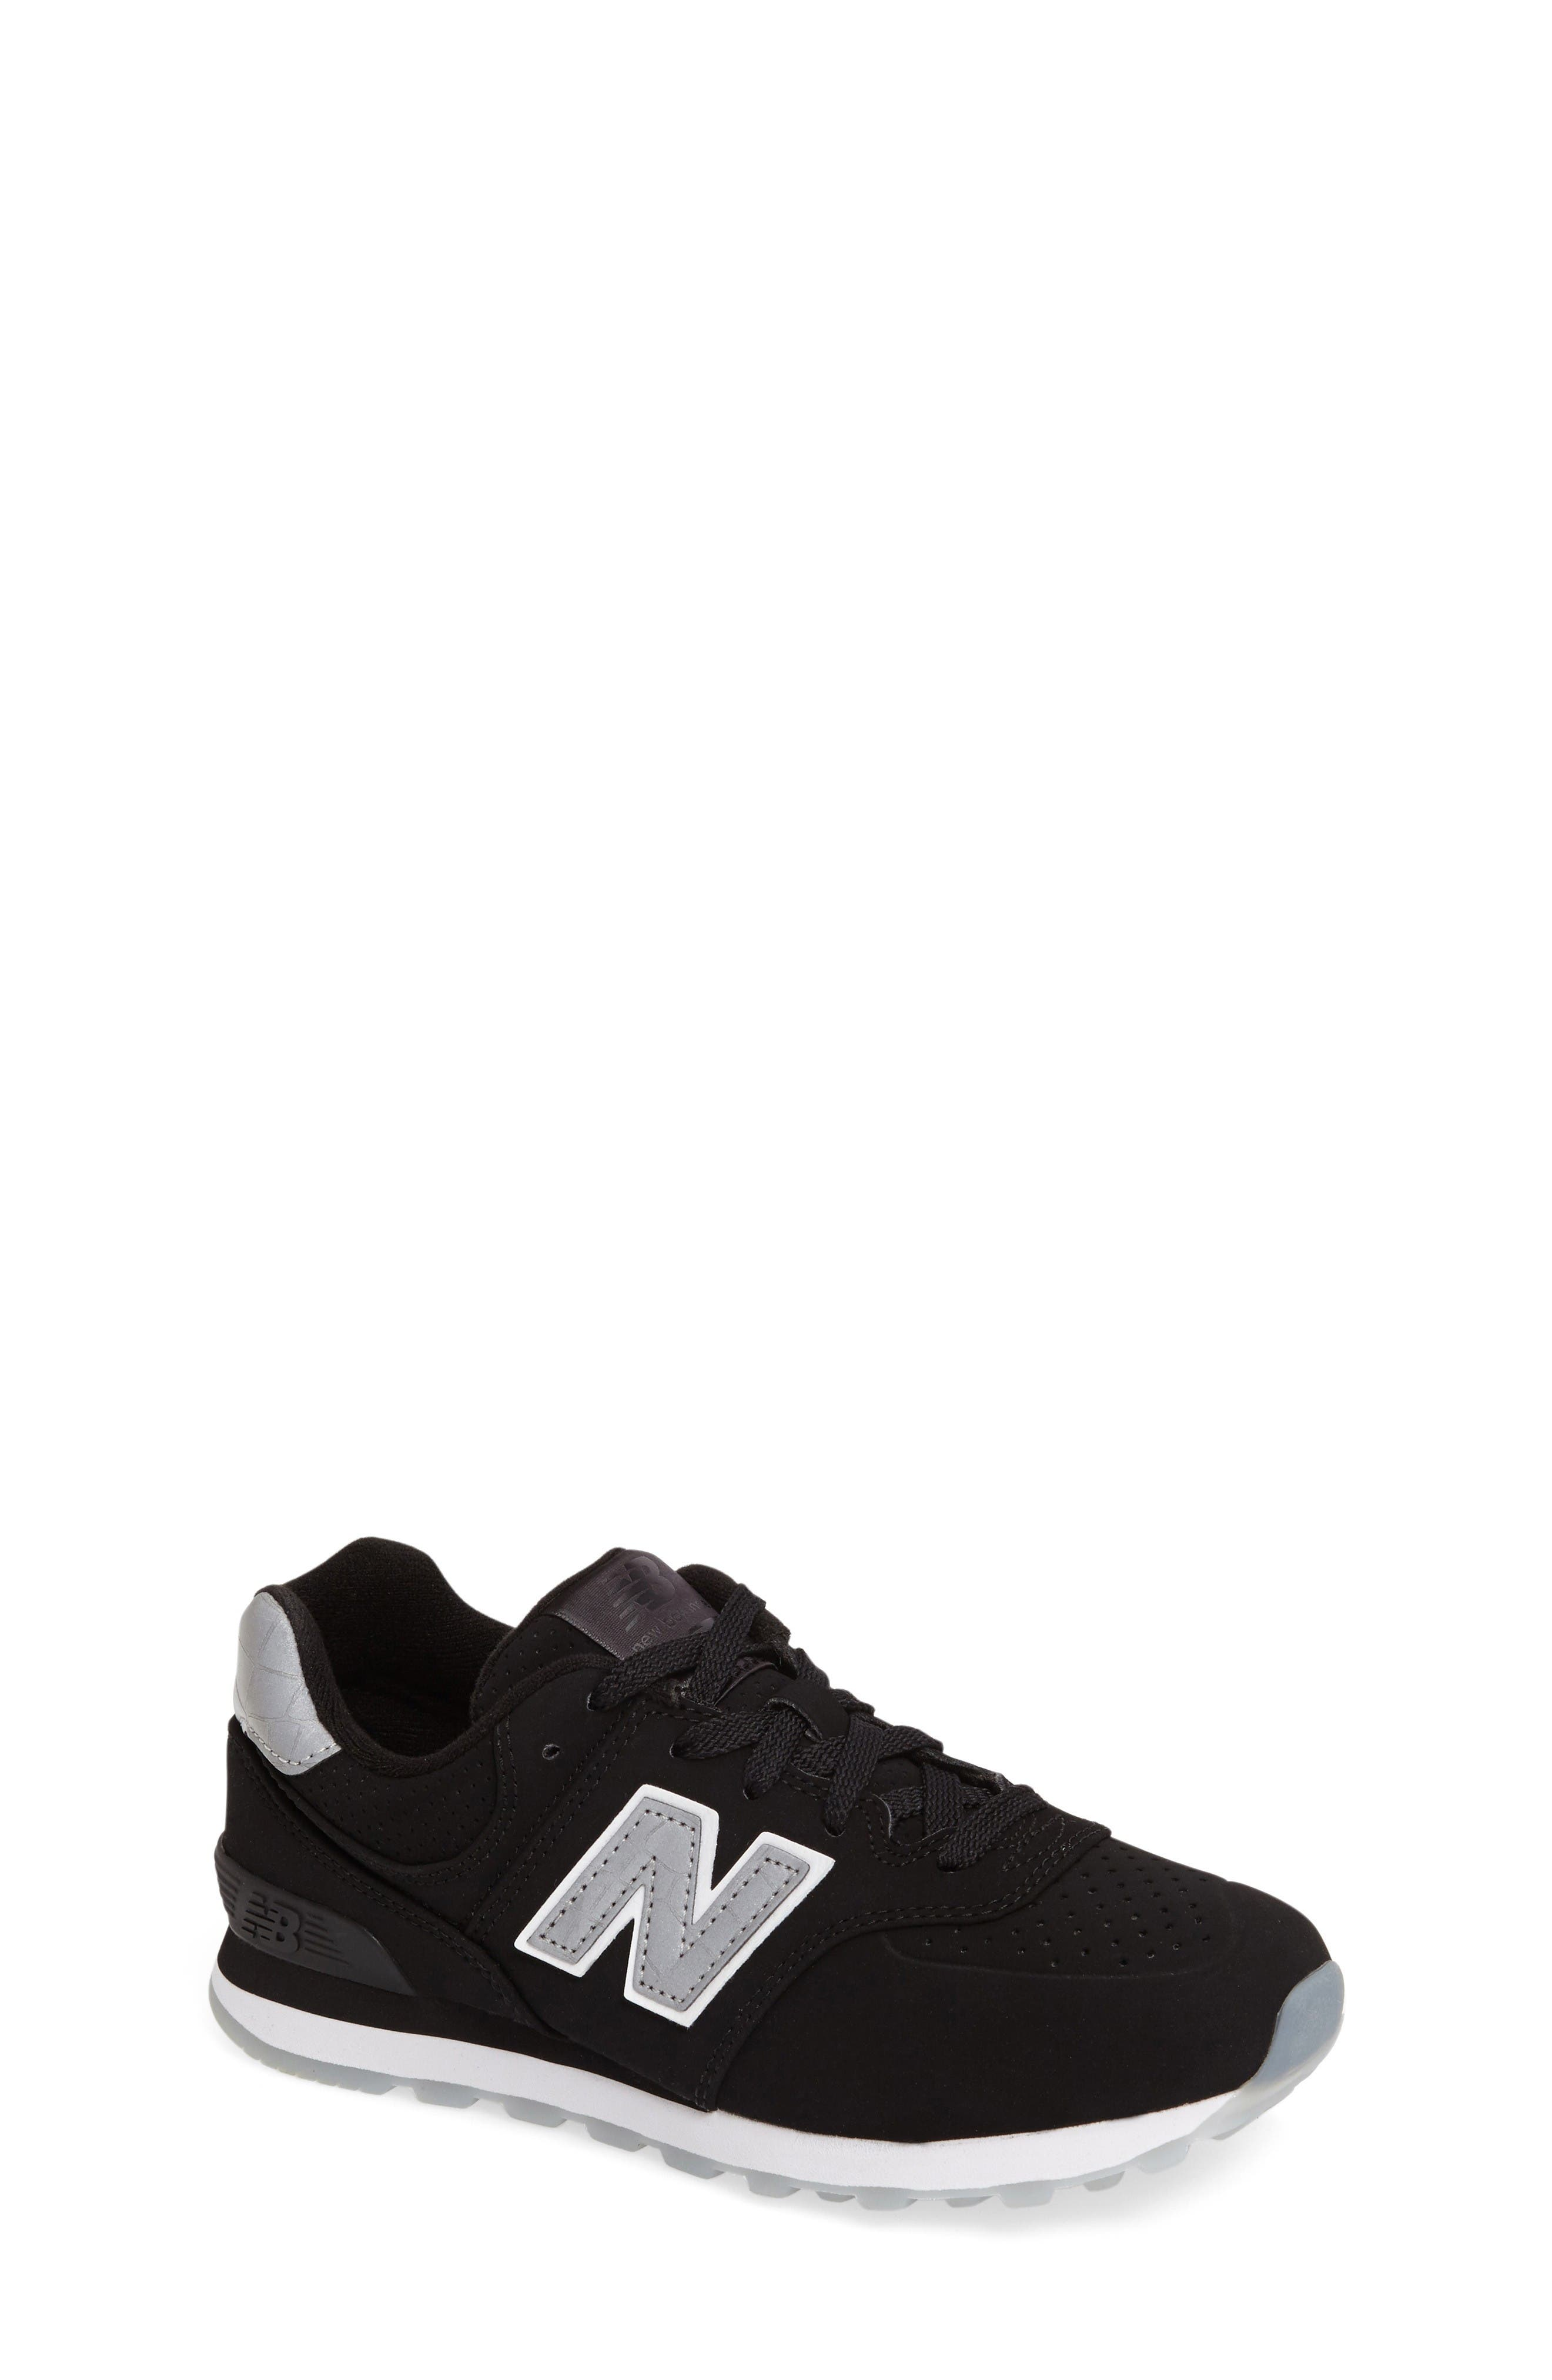 Main Image - New Balance 574 Core Plus Sneaker (Baby, Walker, Toddler, Little Kid, Big Kid)